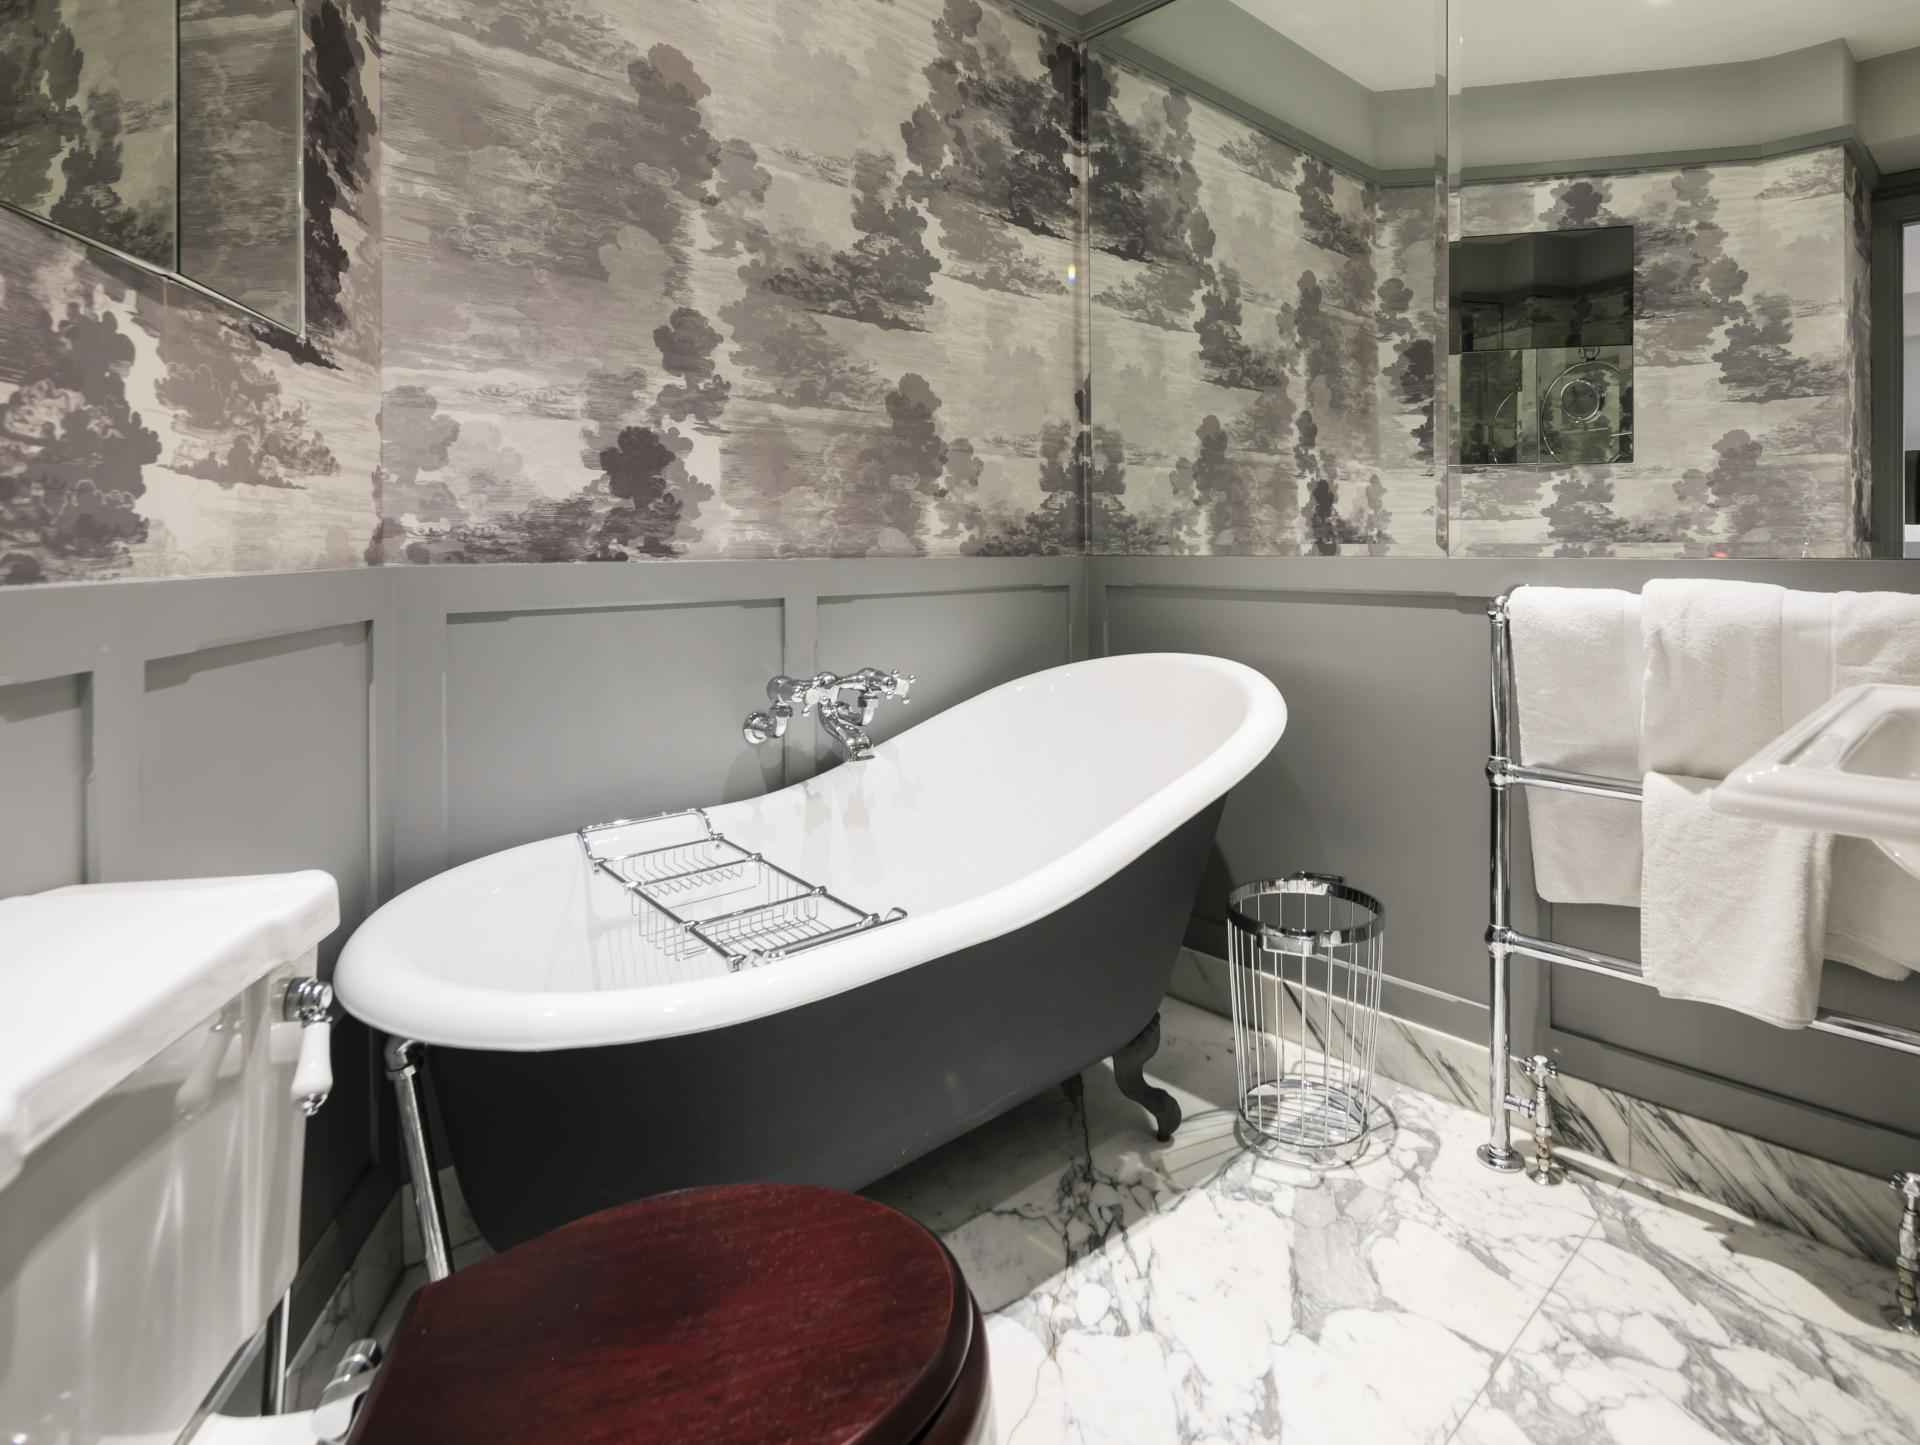 Bath at Luxurious Mayfair Apartments, Mayfair, London